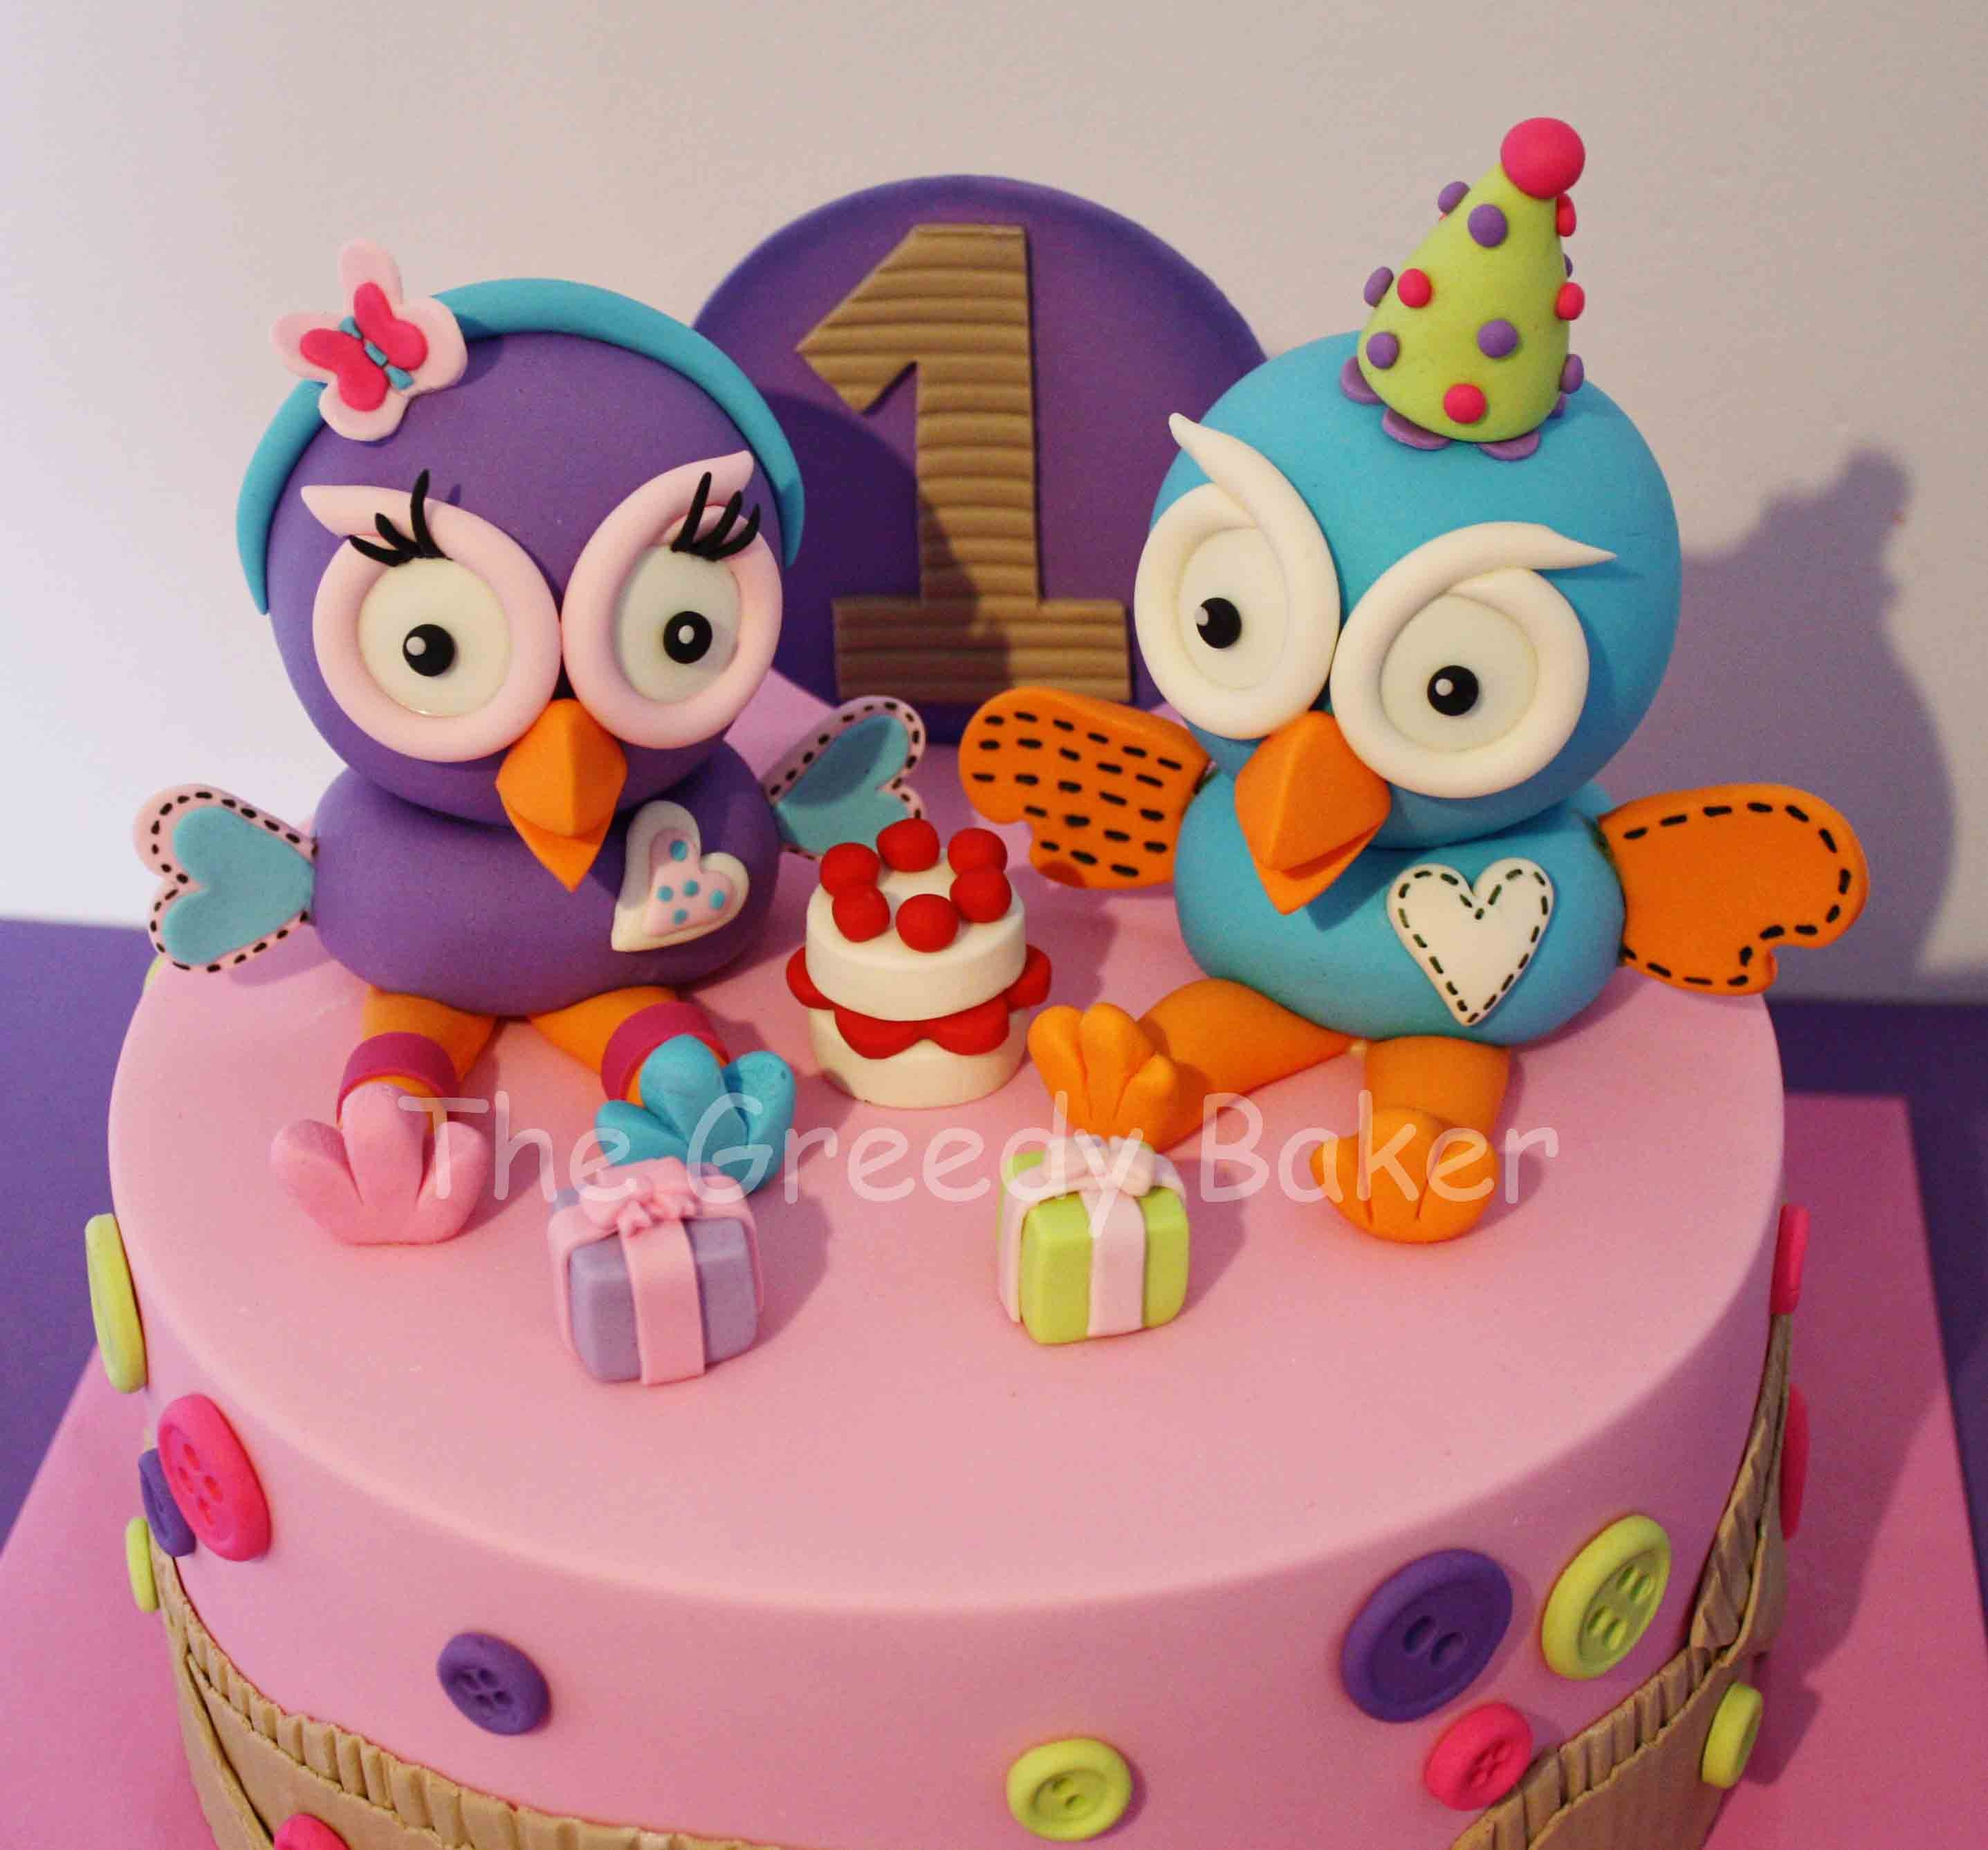 Hoot Amp Hootabelle Cake All Handcrafted I Have Seen This